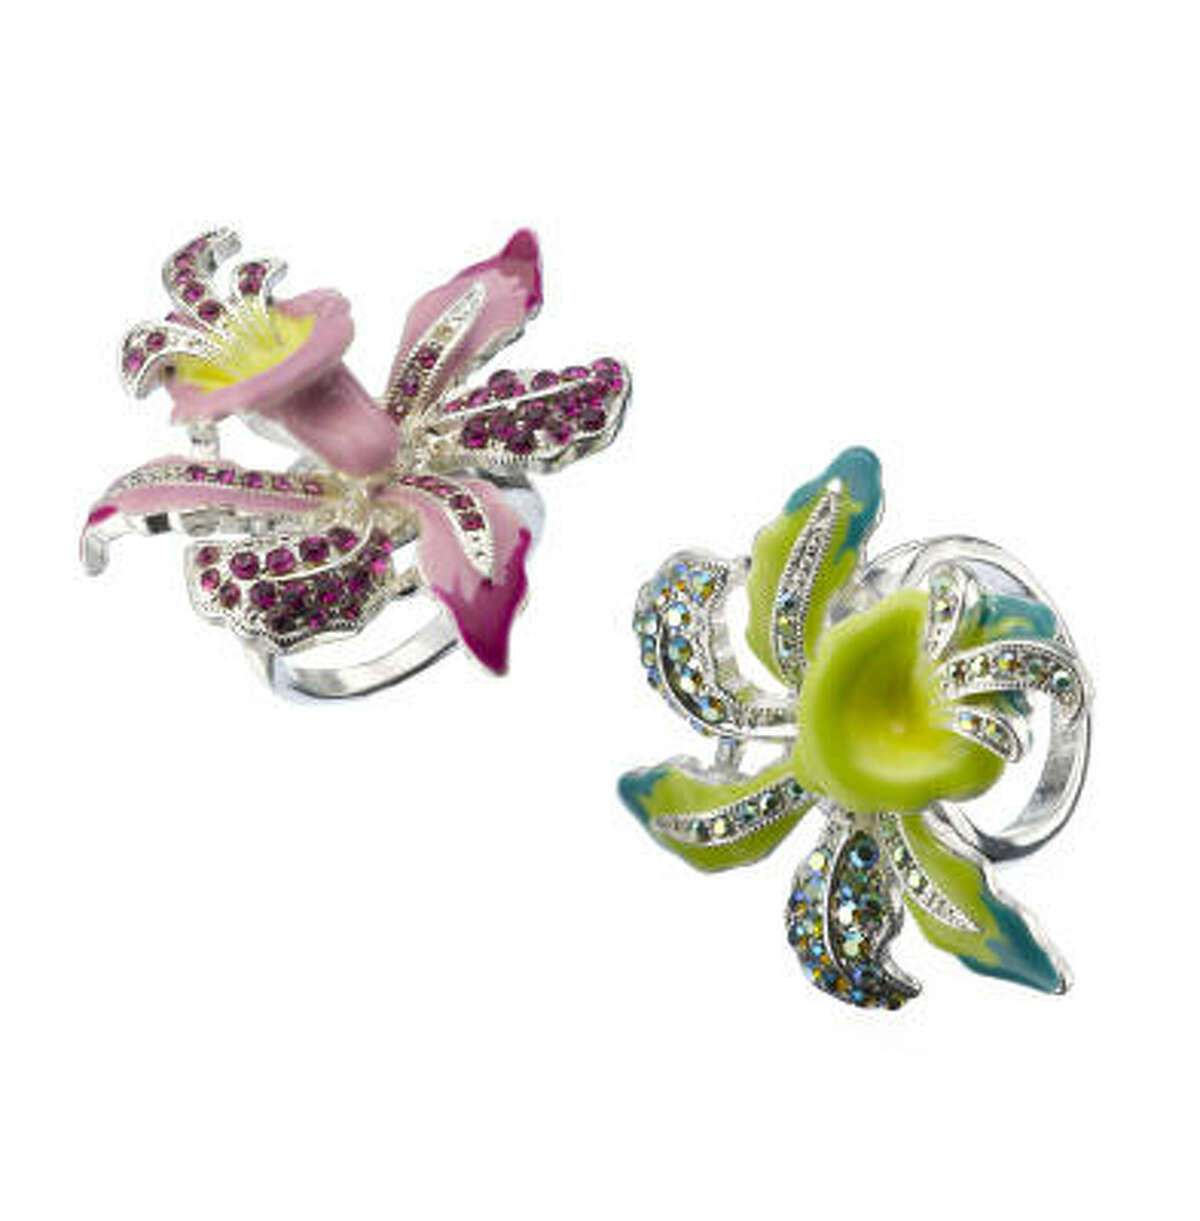 Decorative pins, such as these from Macy's, are an easy way to add chartreuse to your wardrobe.